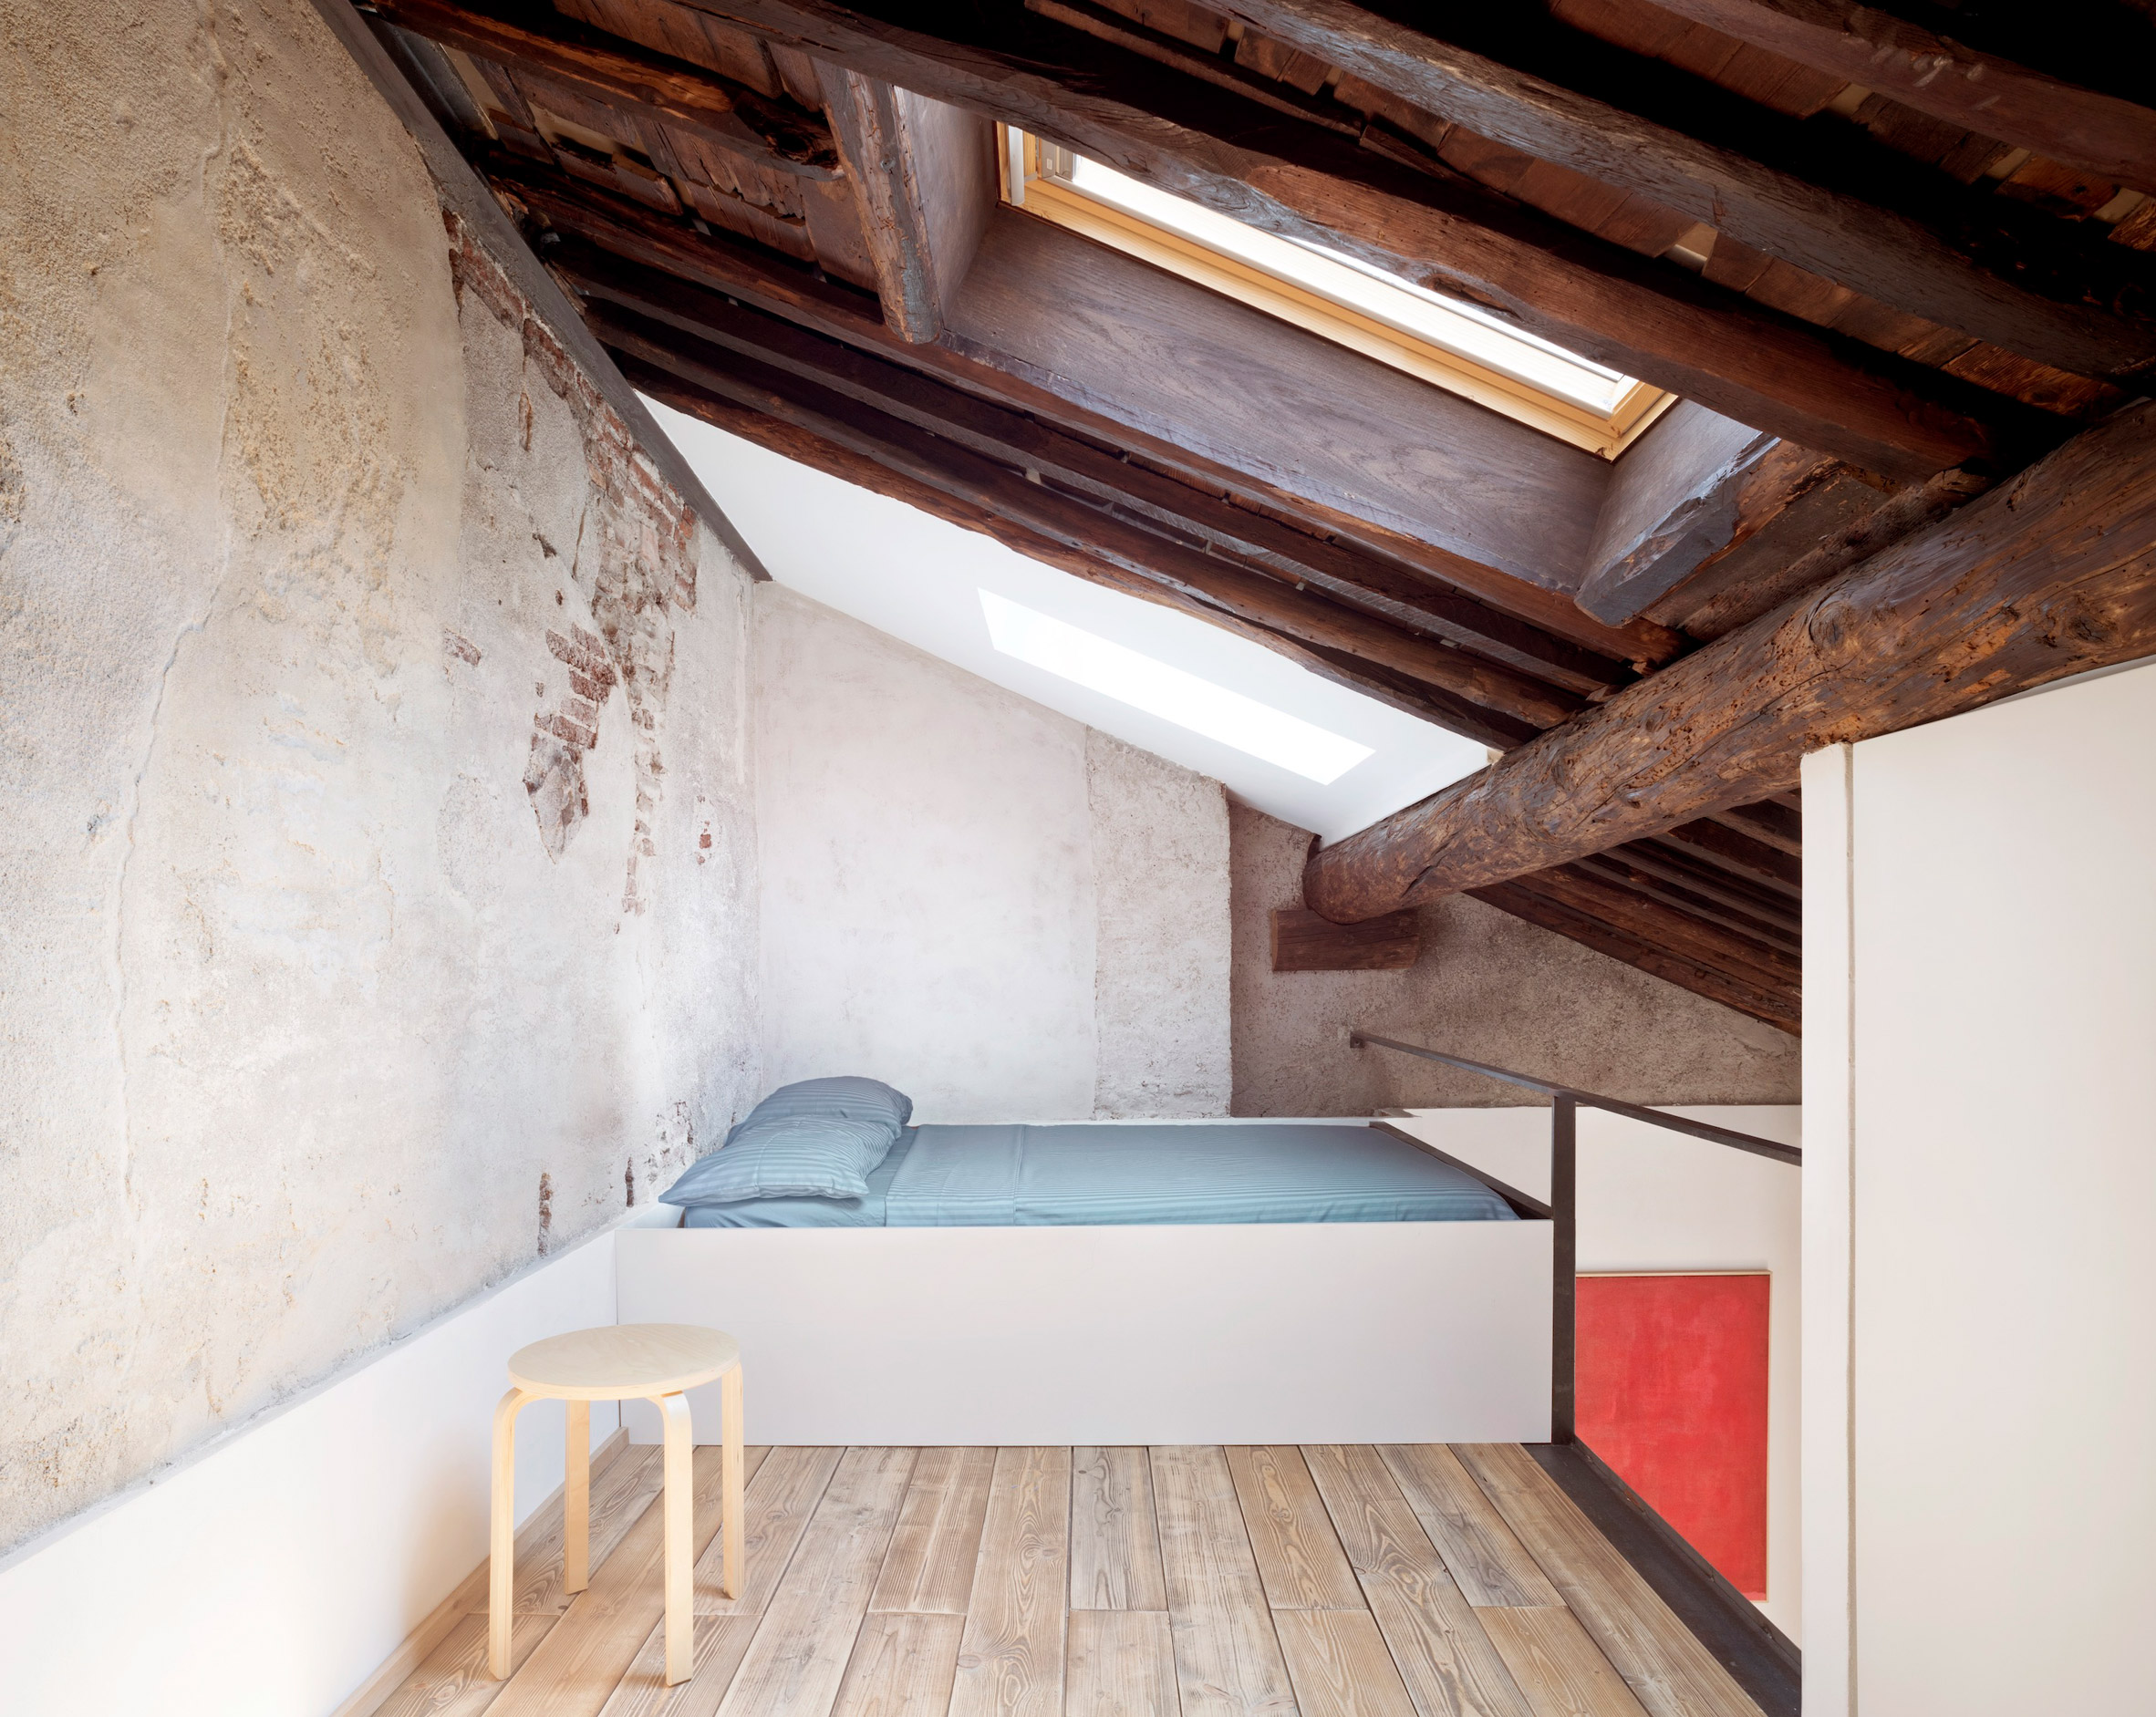 A bed deck in a loft apartment by Dodi Moss